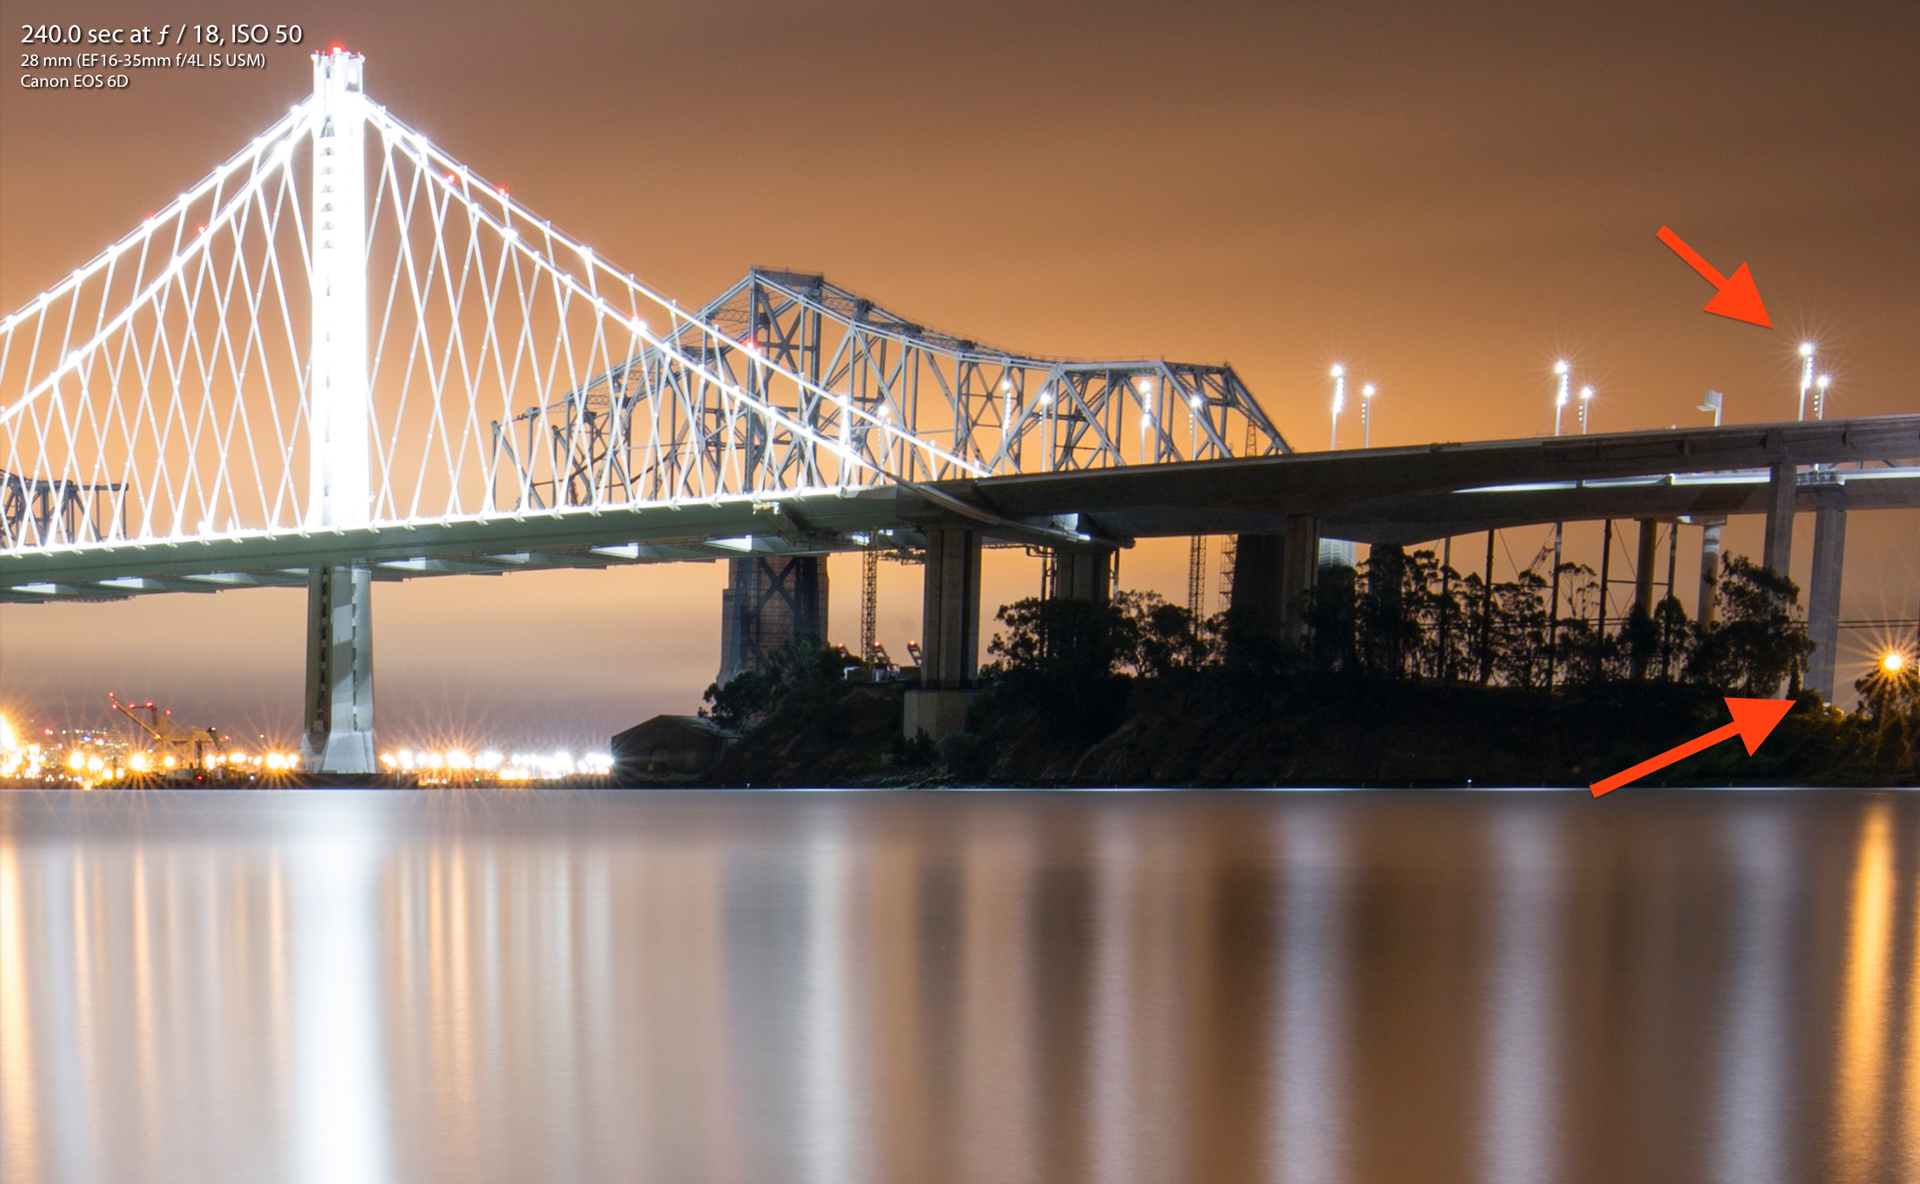 Canon 16-35mm F4 IS on Canon EOS 6D San Francisco Bay Bridge Nightscape Long Exposure Sharpness Test